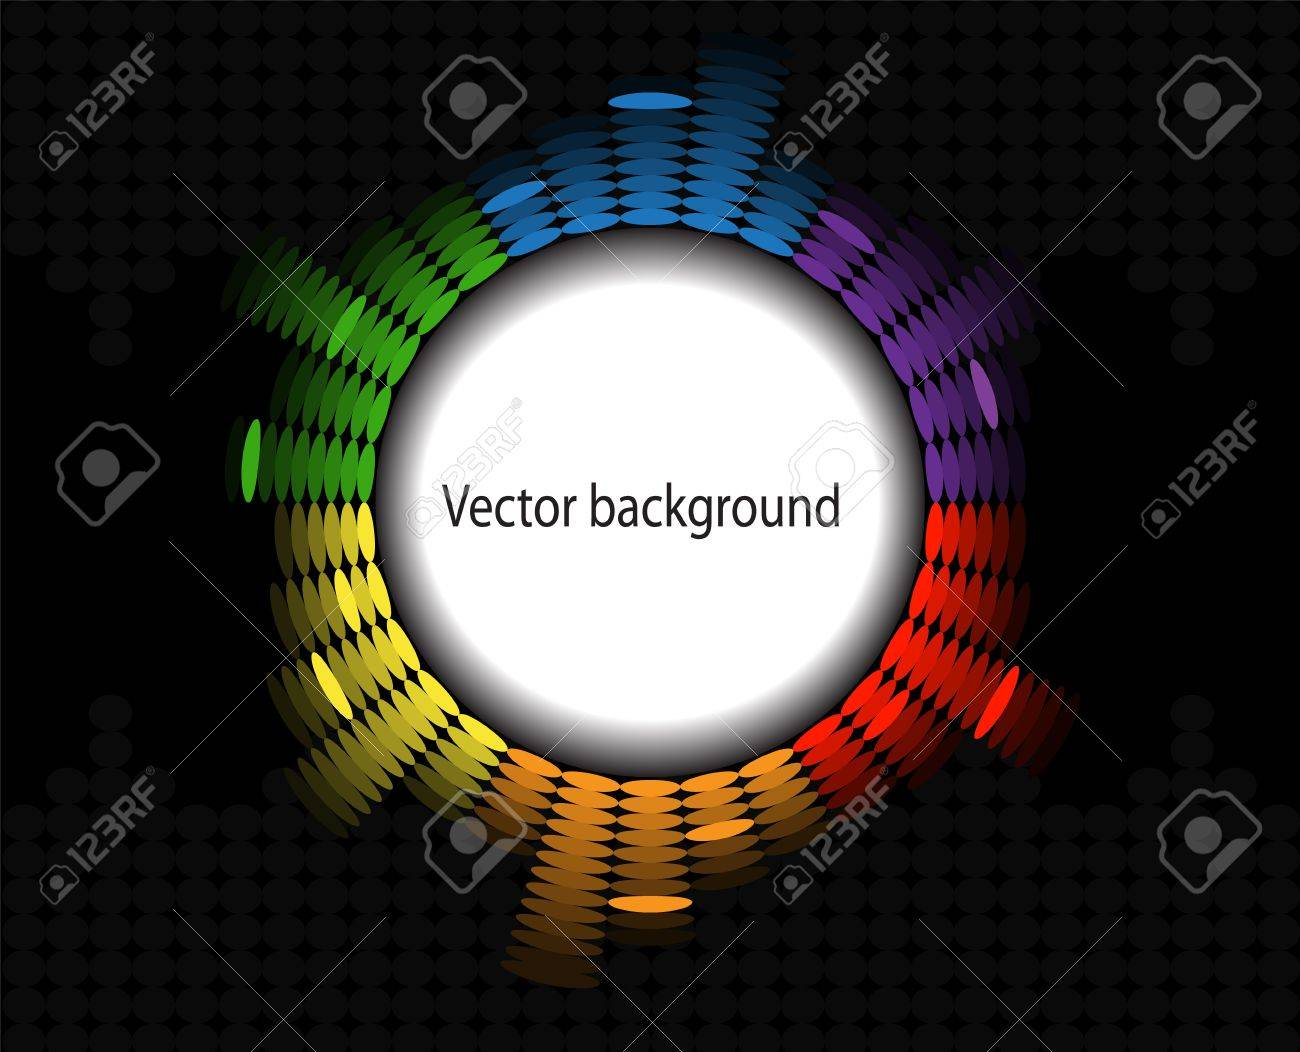 frame in the form of a round brilliant equalizer on black background Stock Vector - 18519484